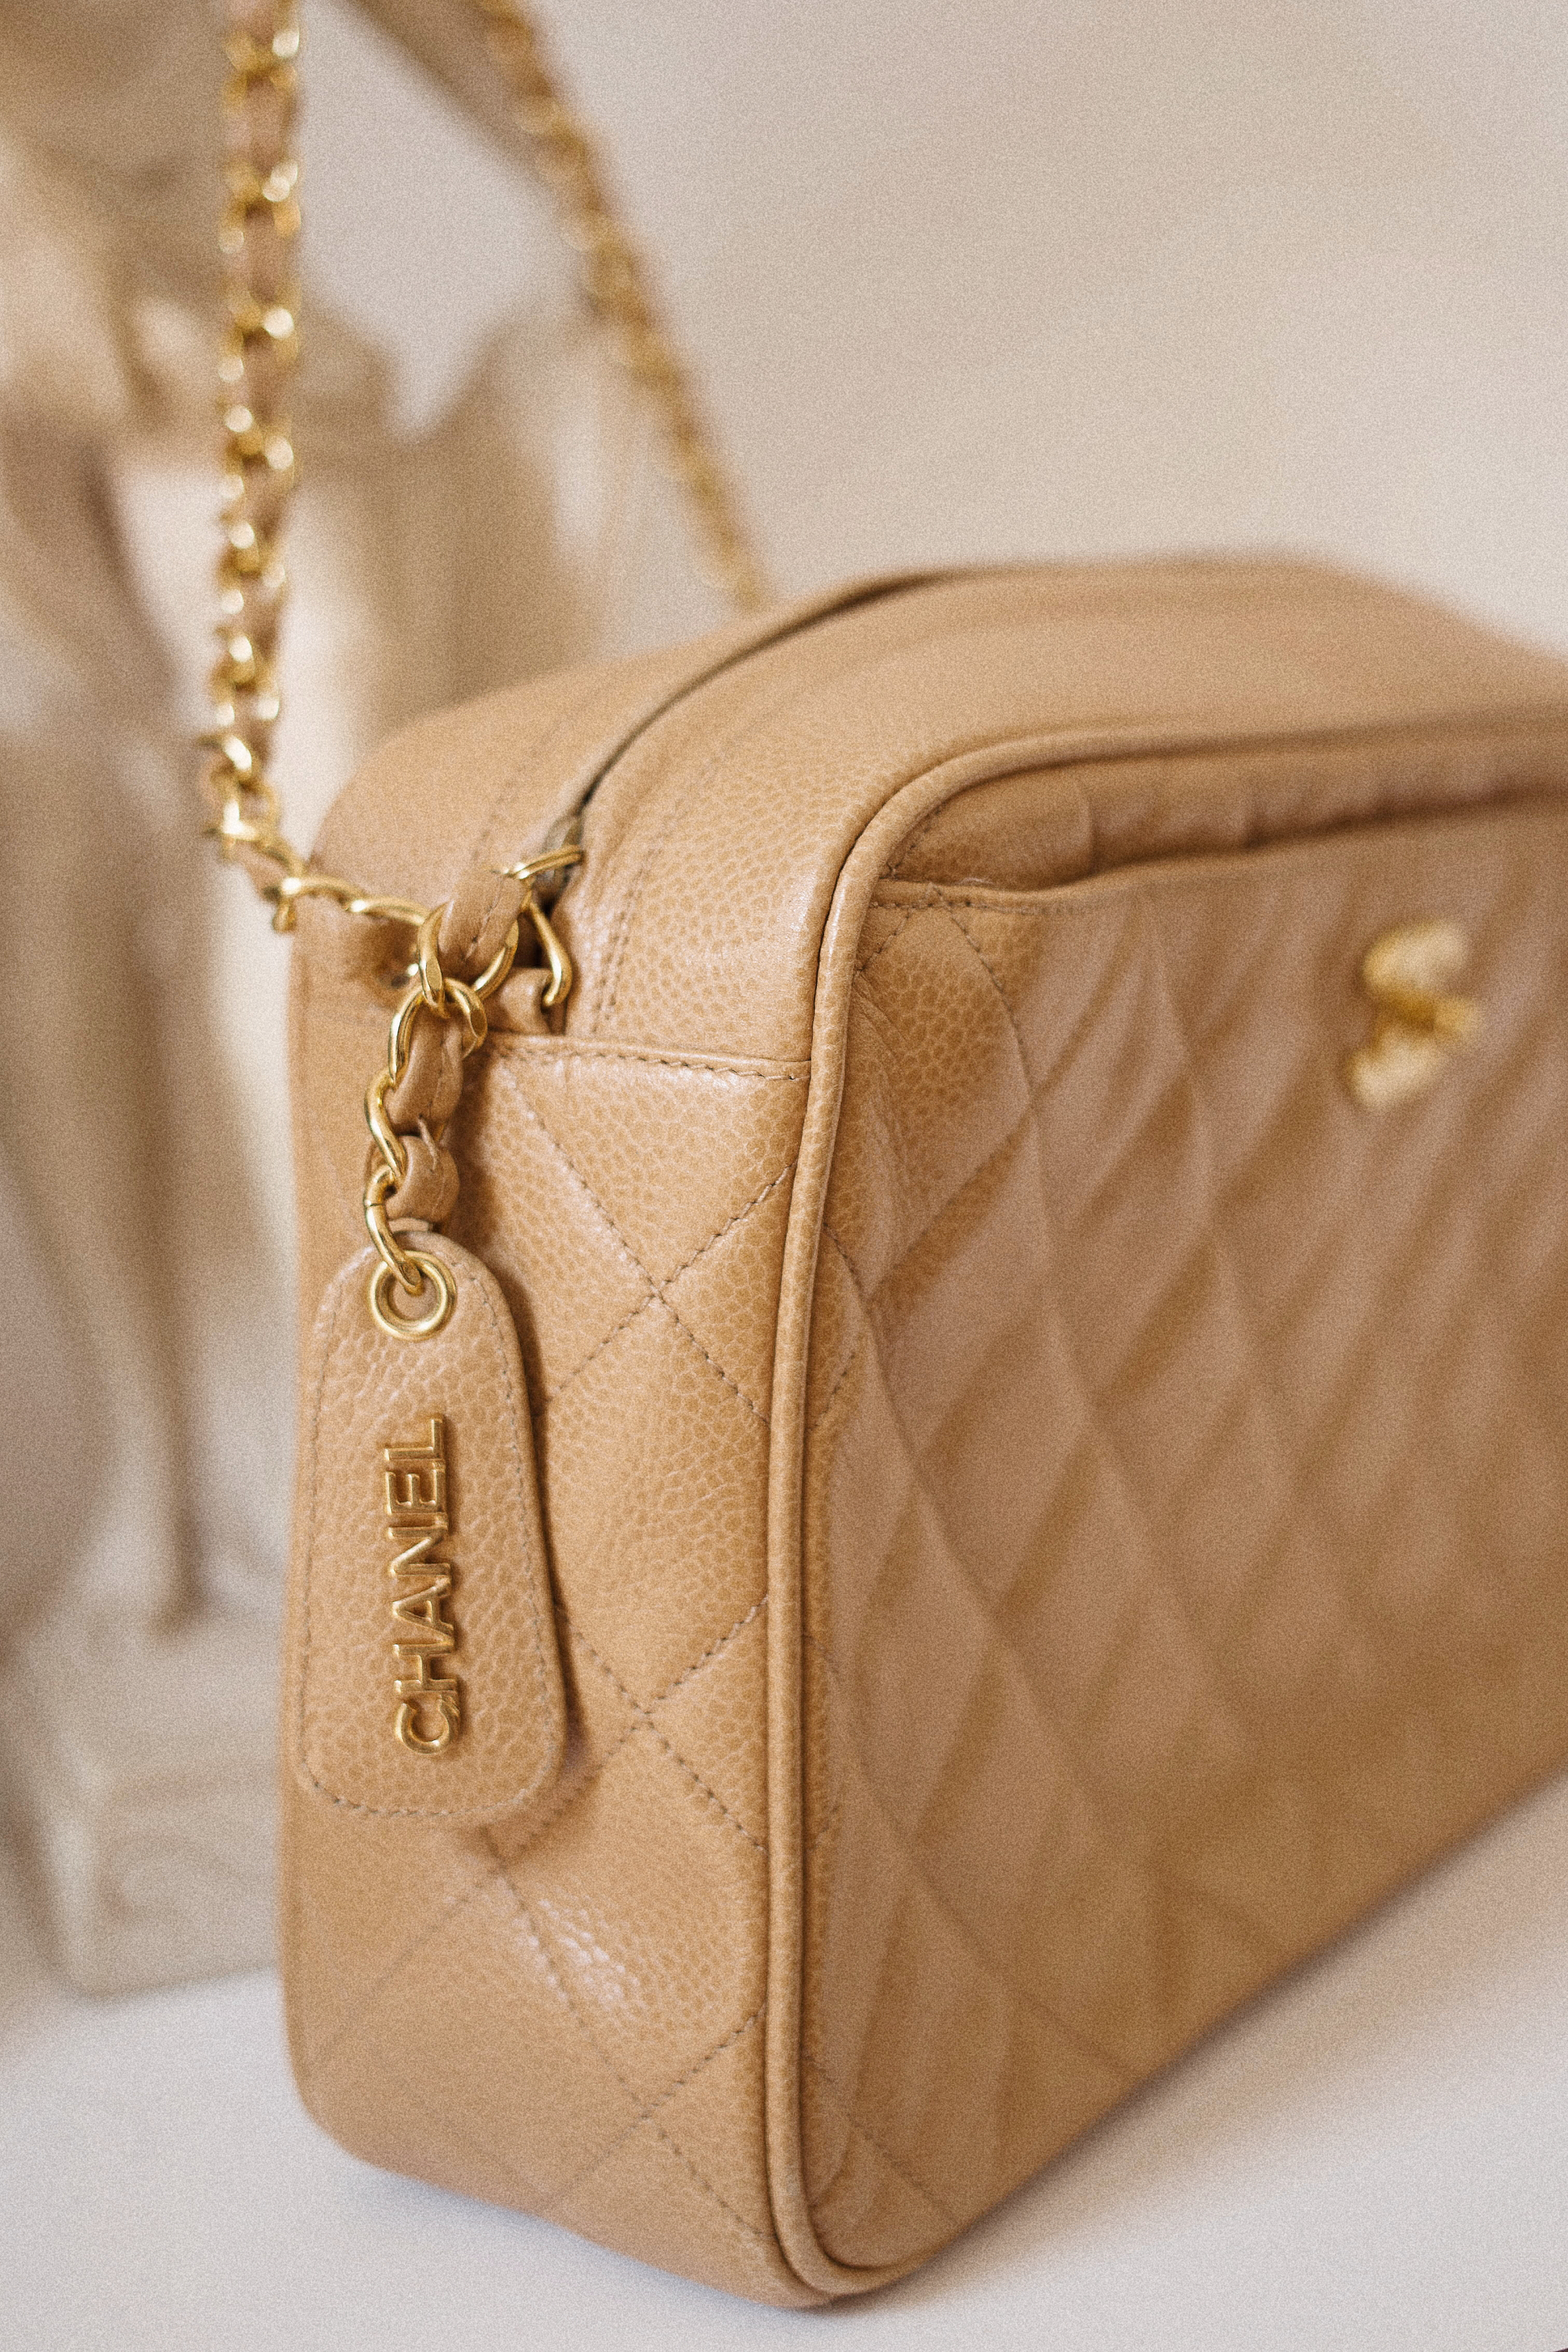 cd6ffd4fe0a5 Have you ever purchase a vintage designer item? How was your experience?